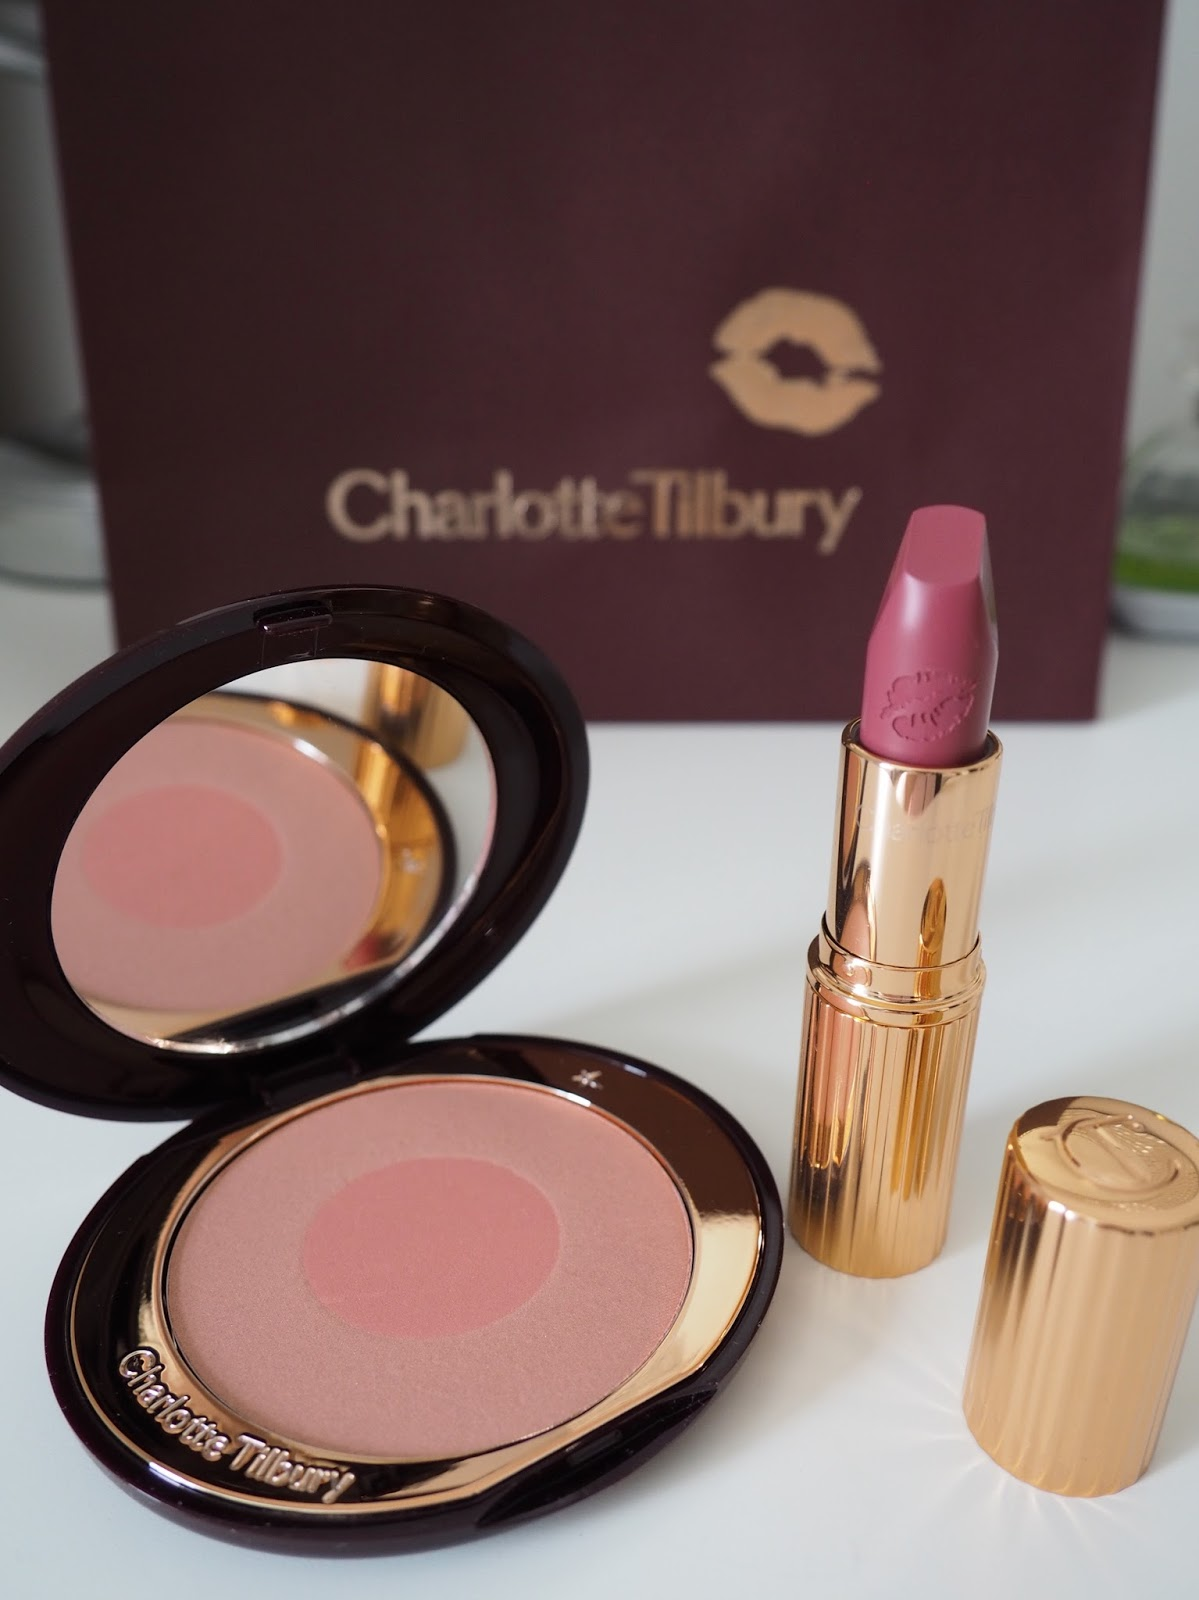 Charlotte Tilbury lipstick review hot lips collection blusher cheek to chic